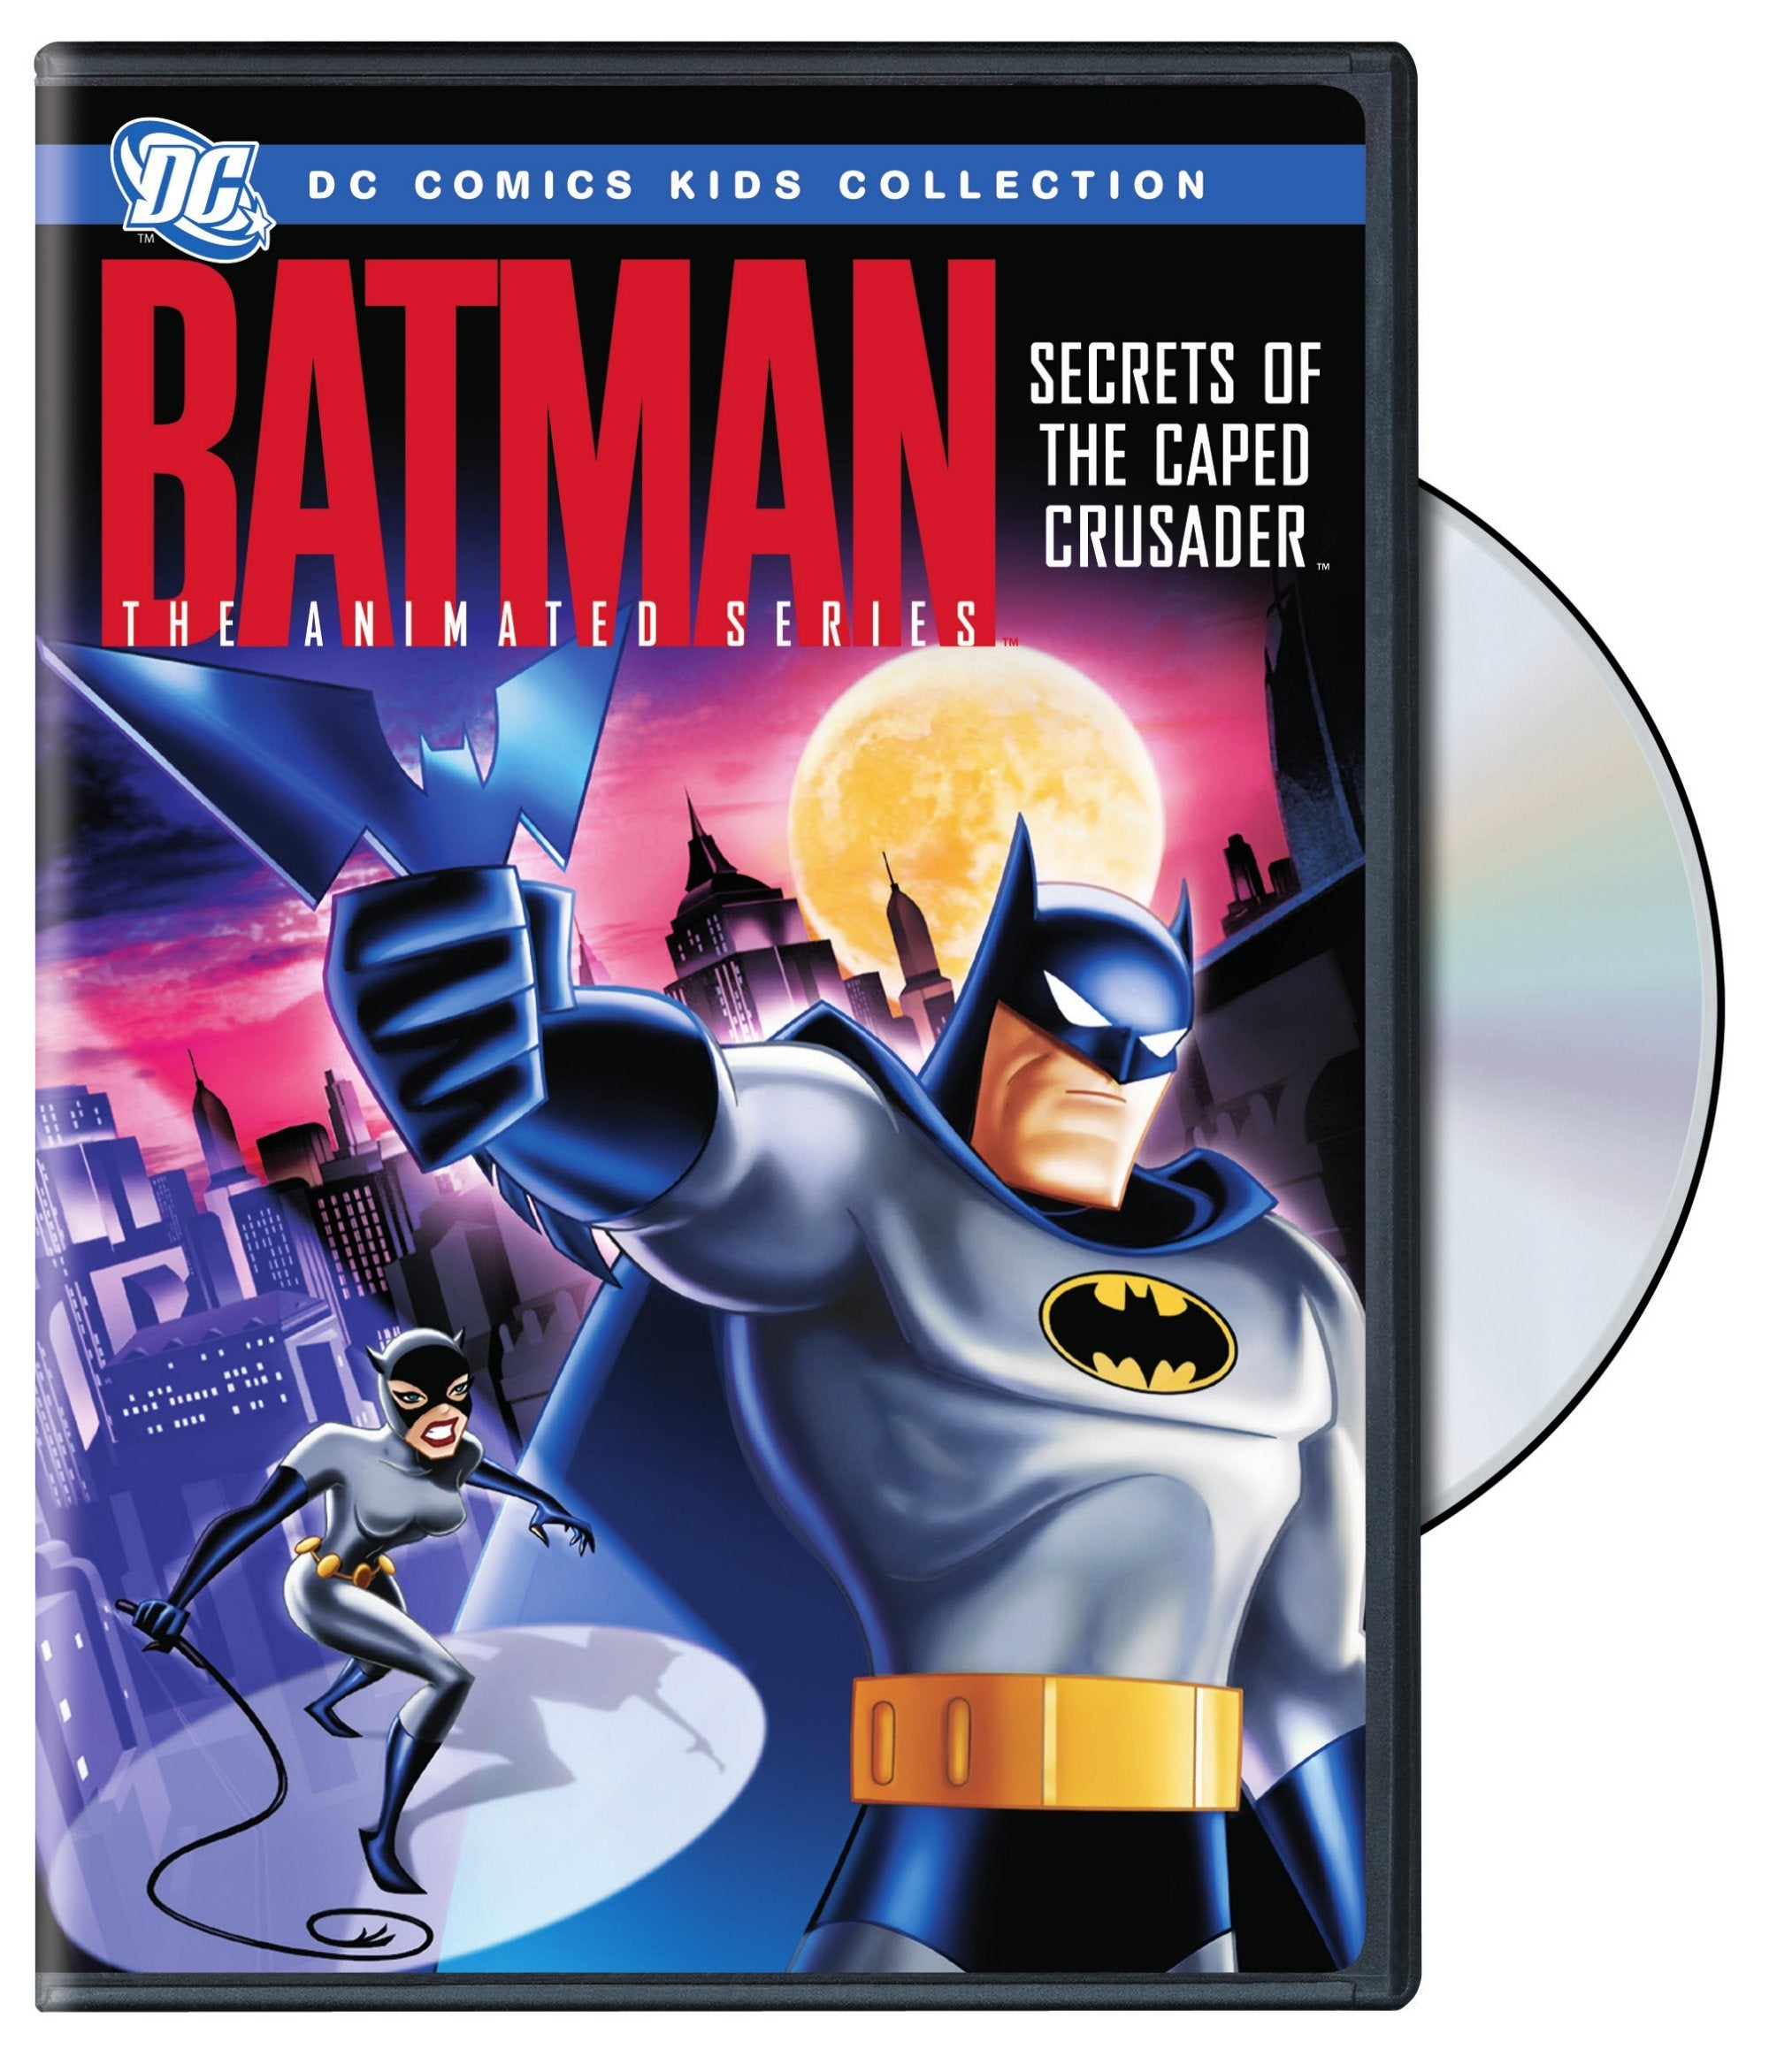 Batman: The Animated Series- Secrets of the Caped Crusader (DVD)